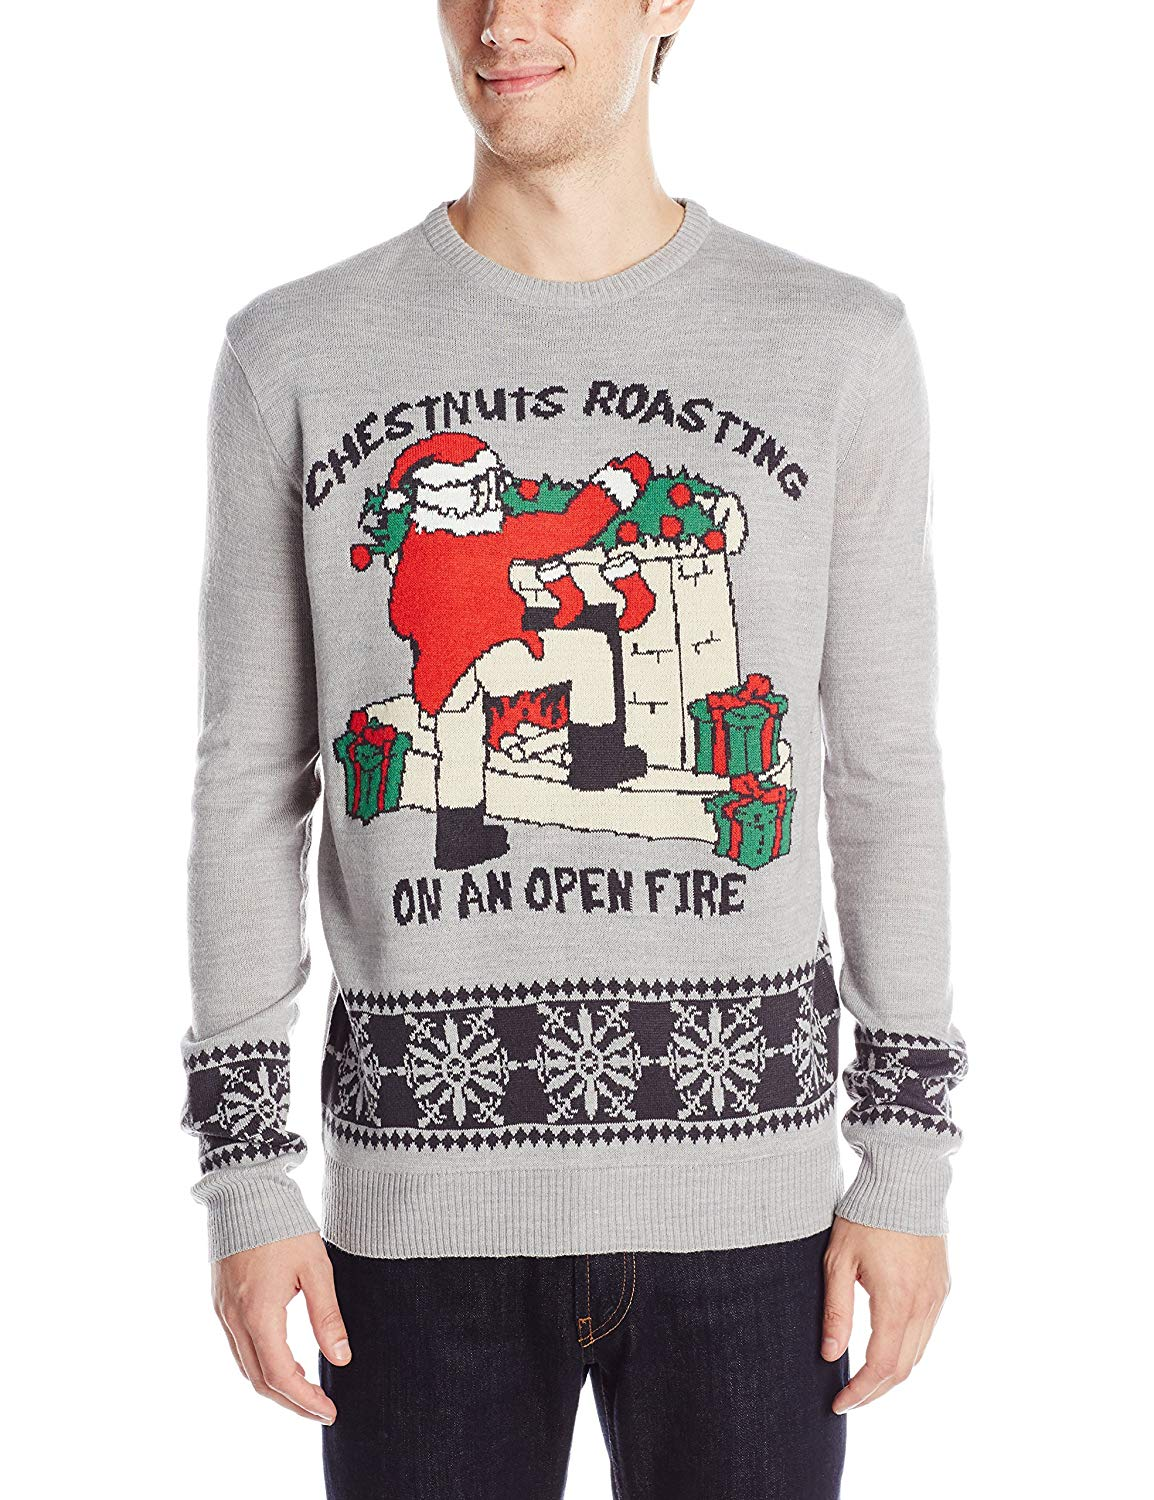 Chestnuts Roasting Ugly Christmas Sweater